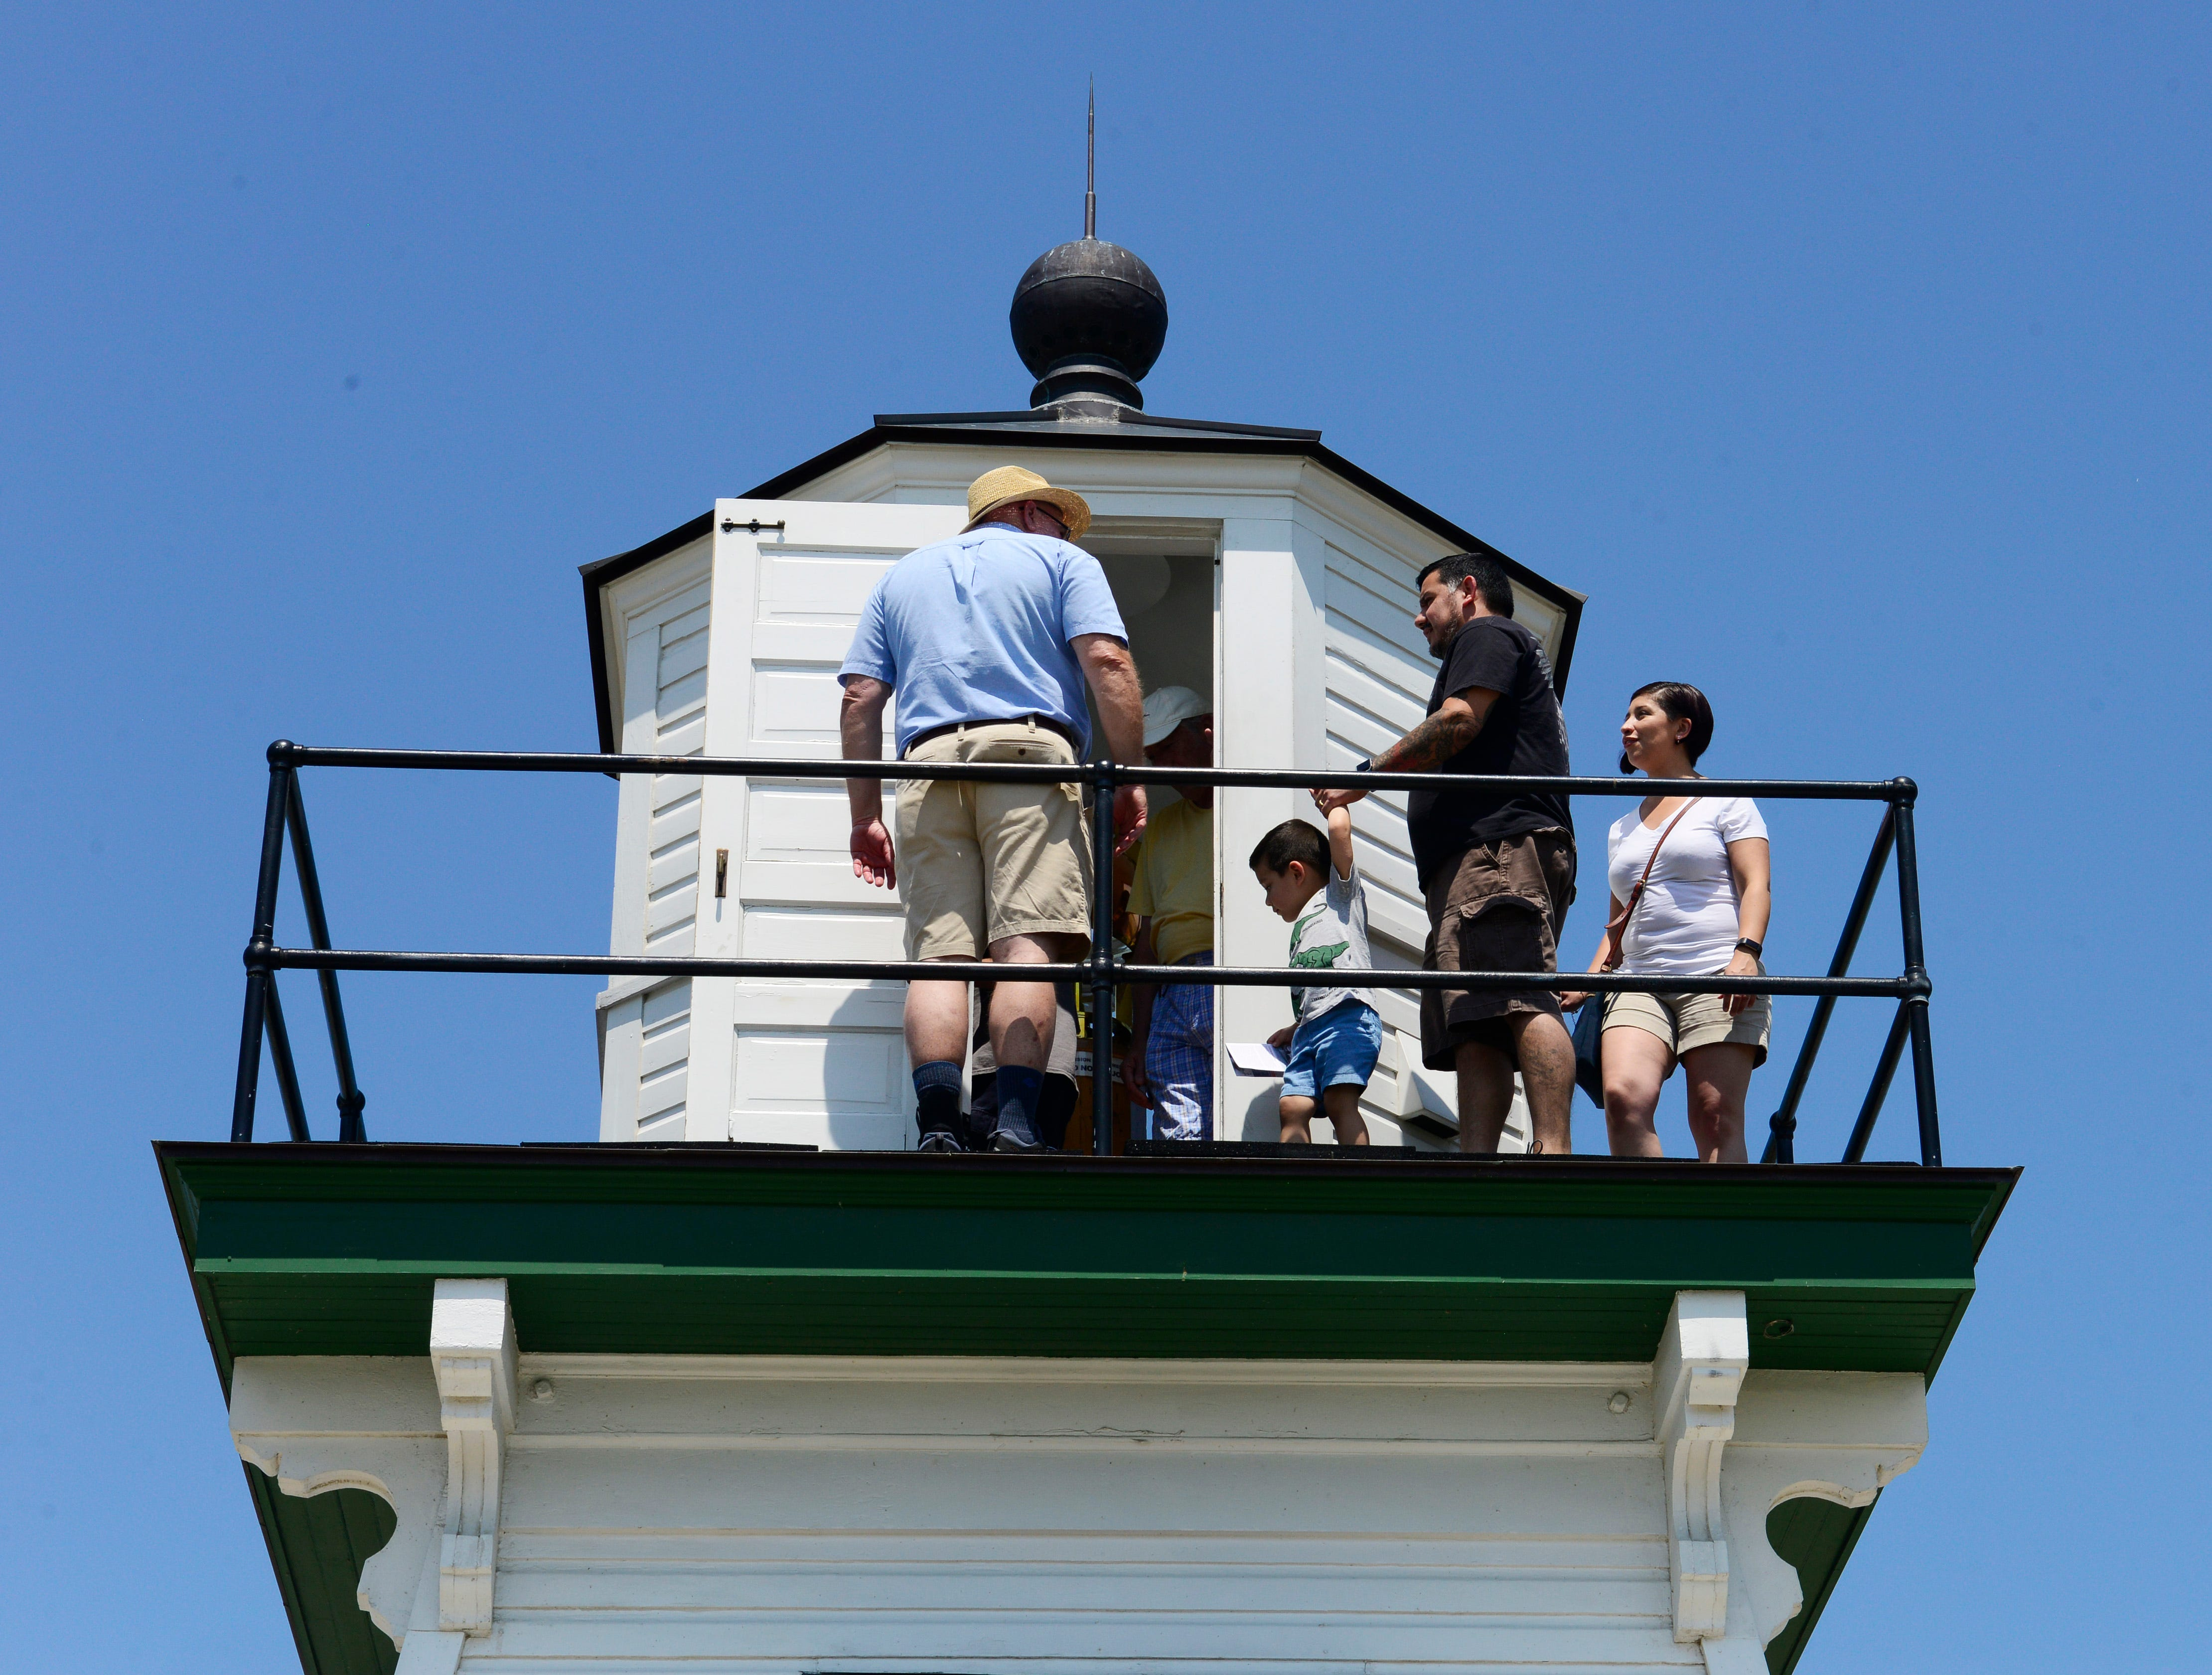 Port Clinton celebrated the second annual Lighthouse Festival on Saturday afternoon with lighthouse tours.